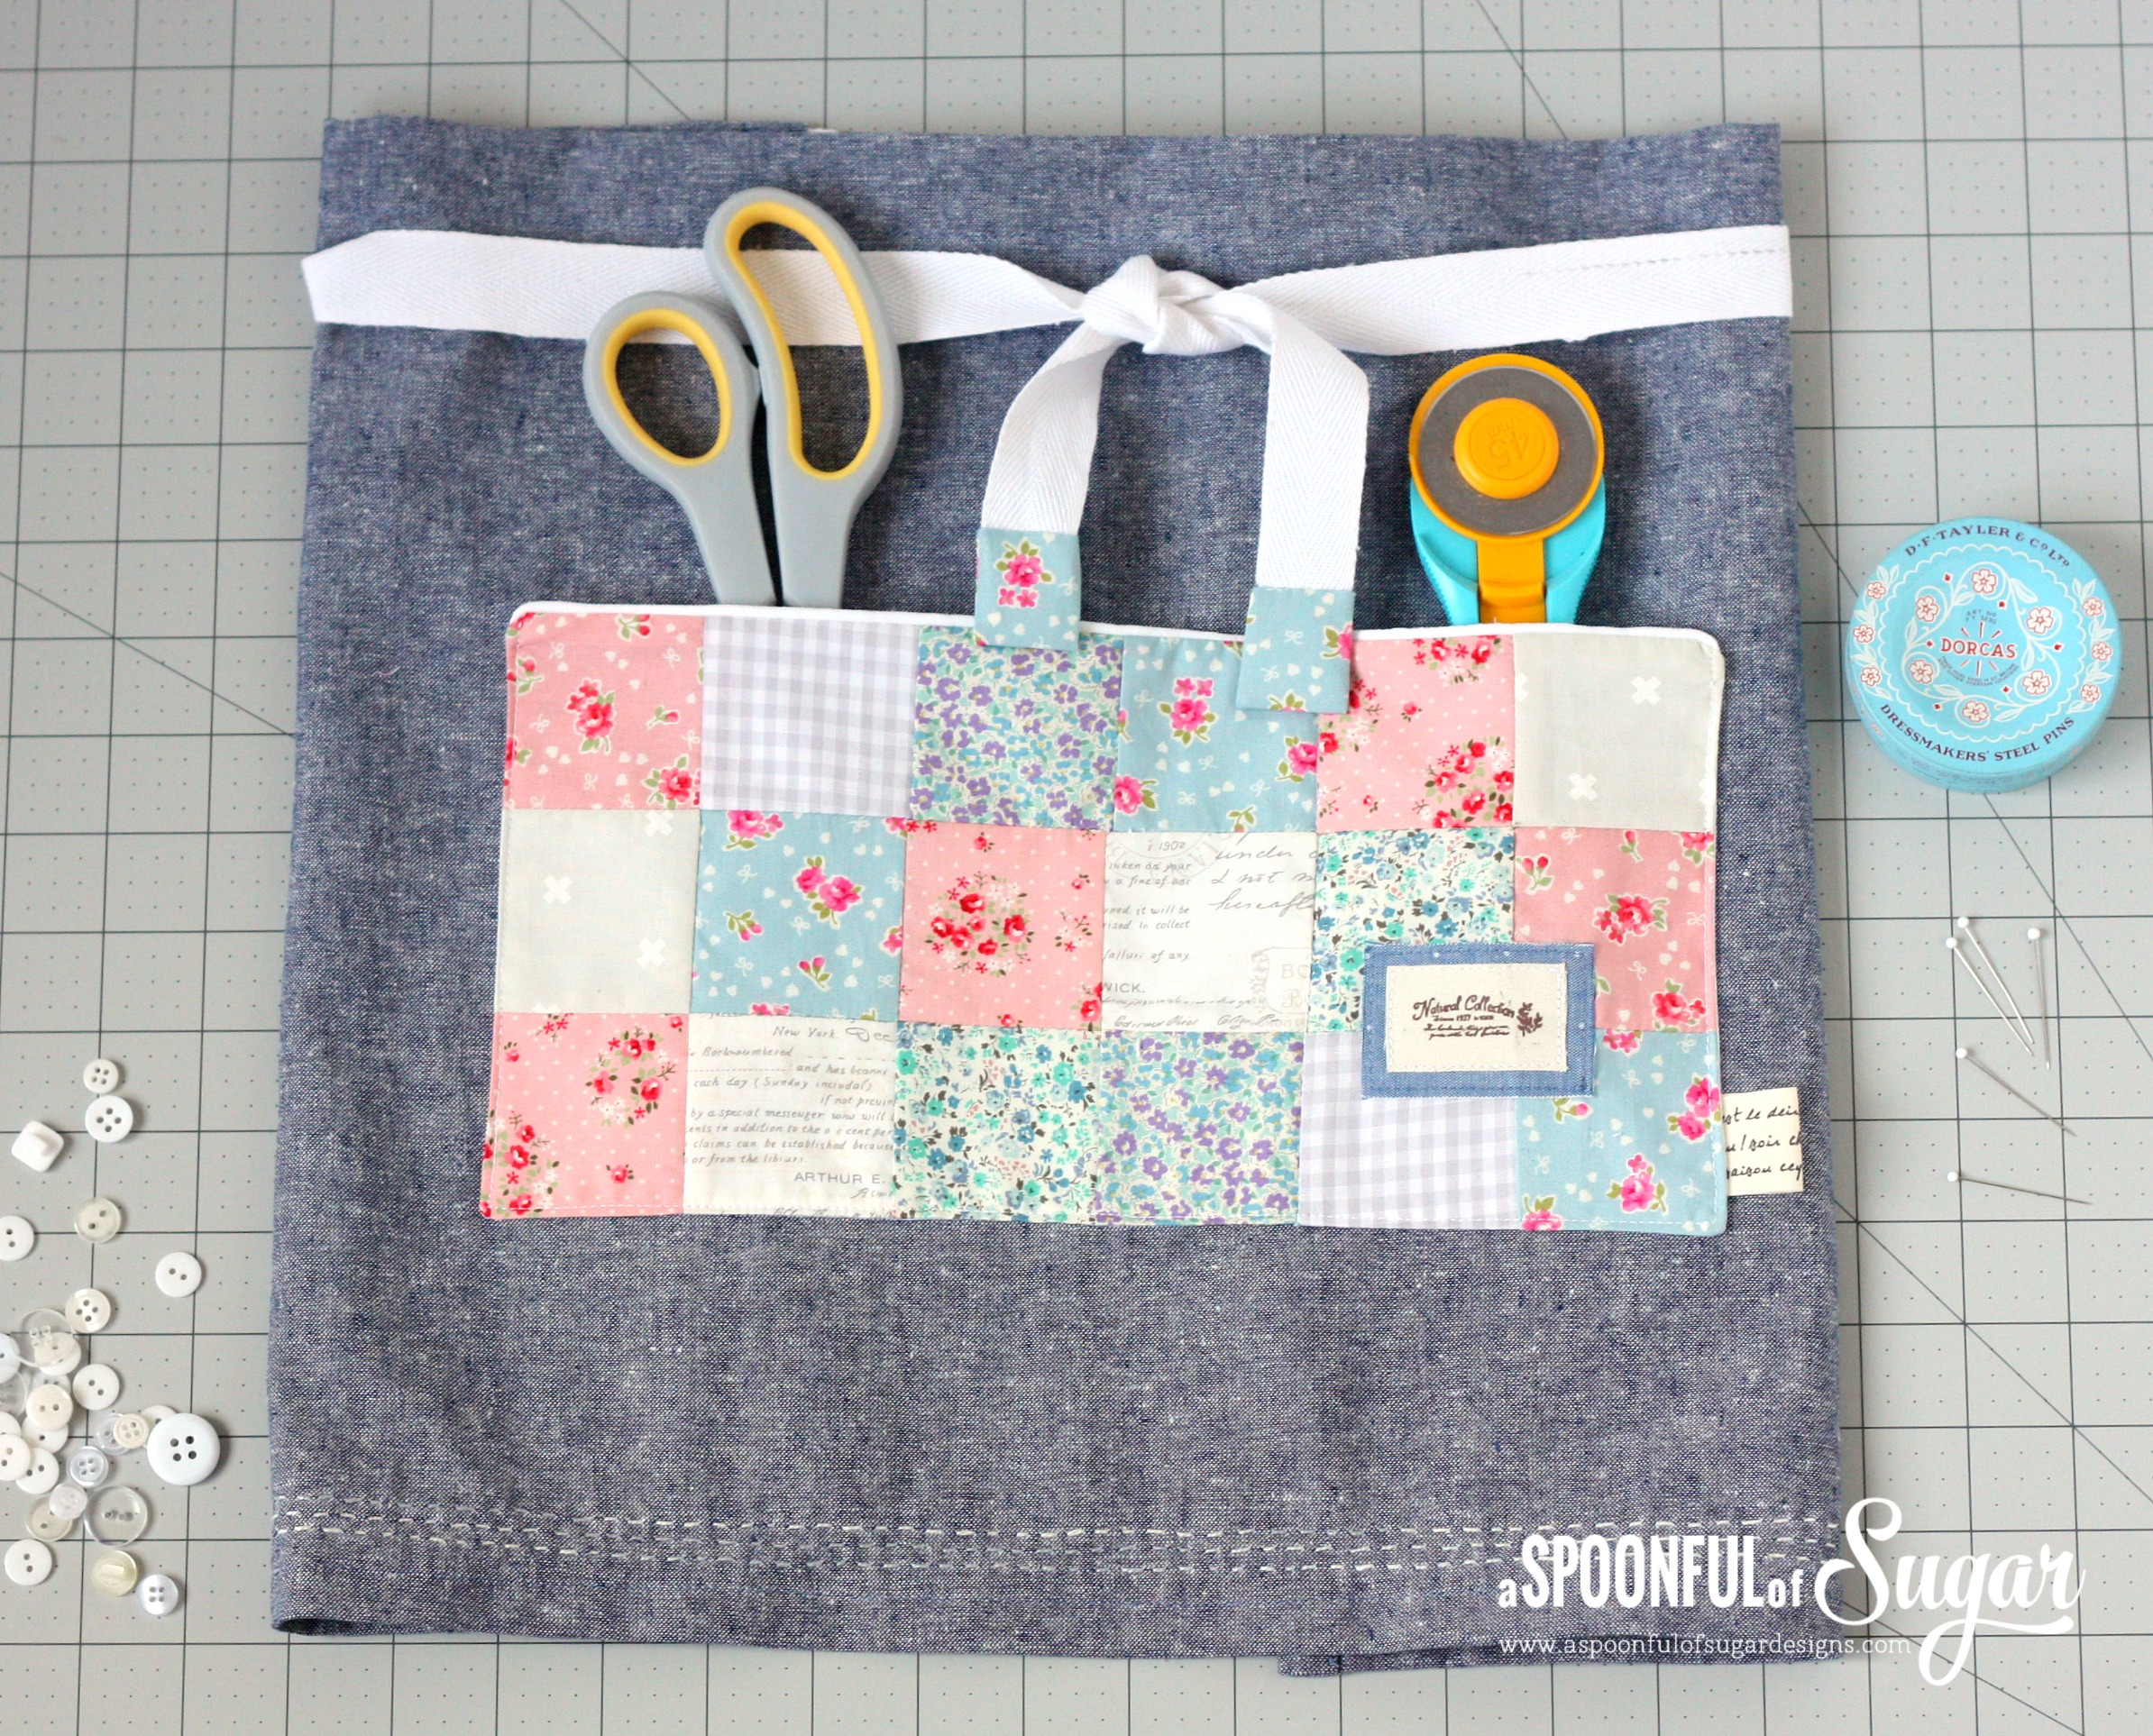 Denim Cafe Apron from A Spoonful of Sugar (book)